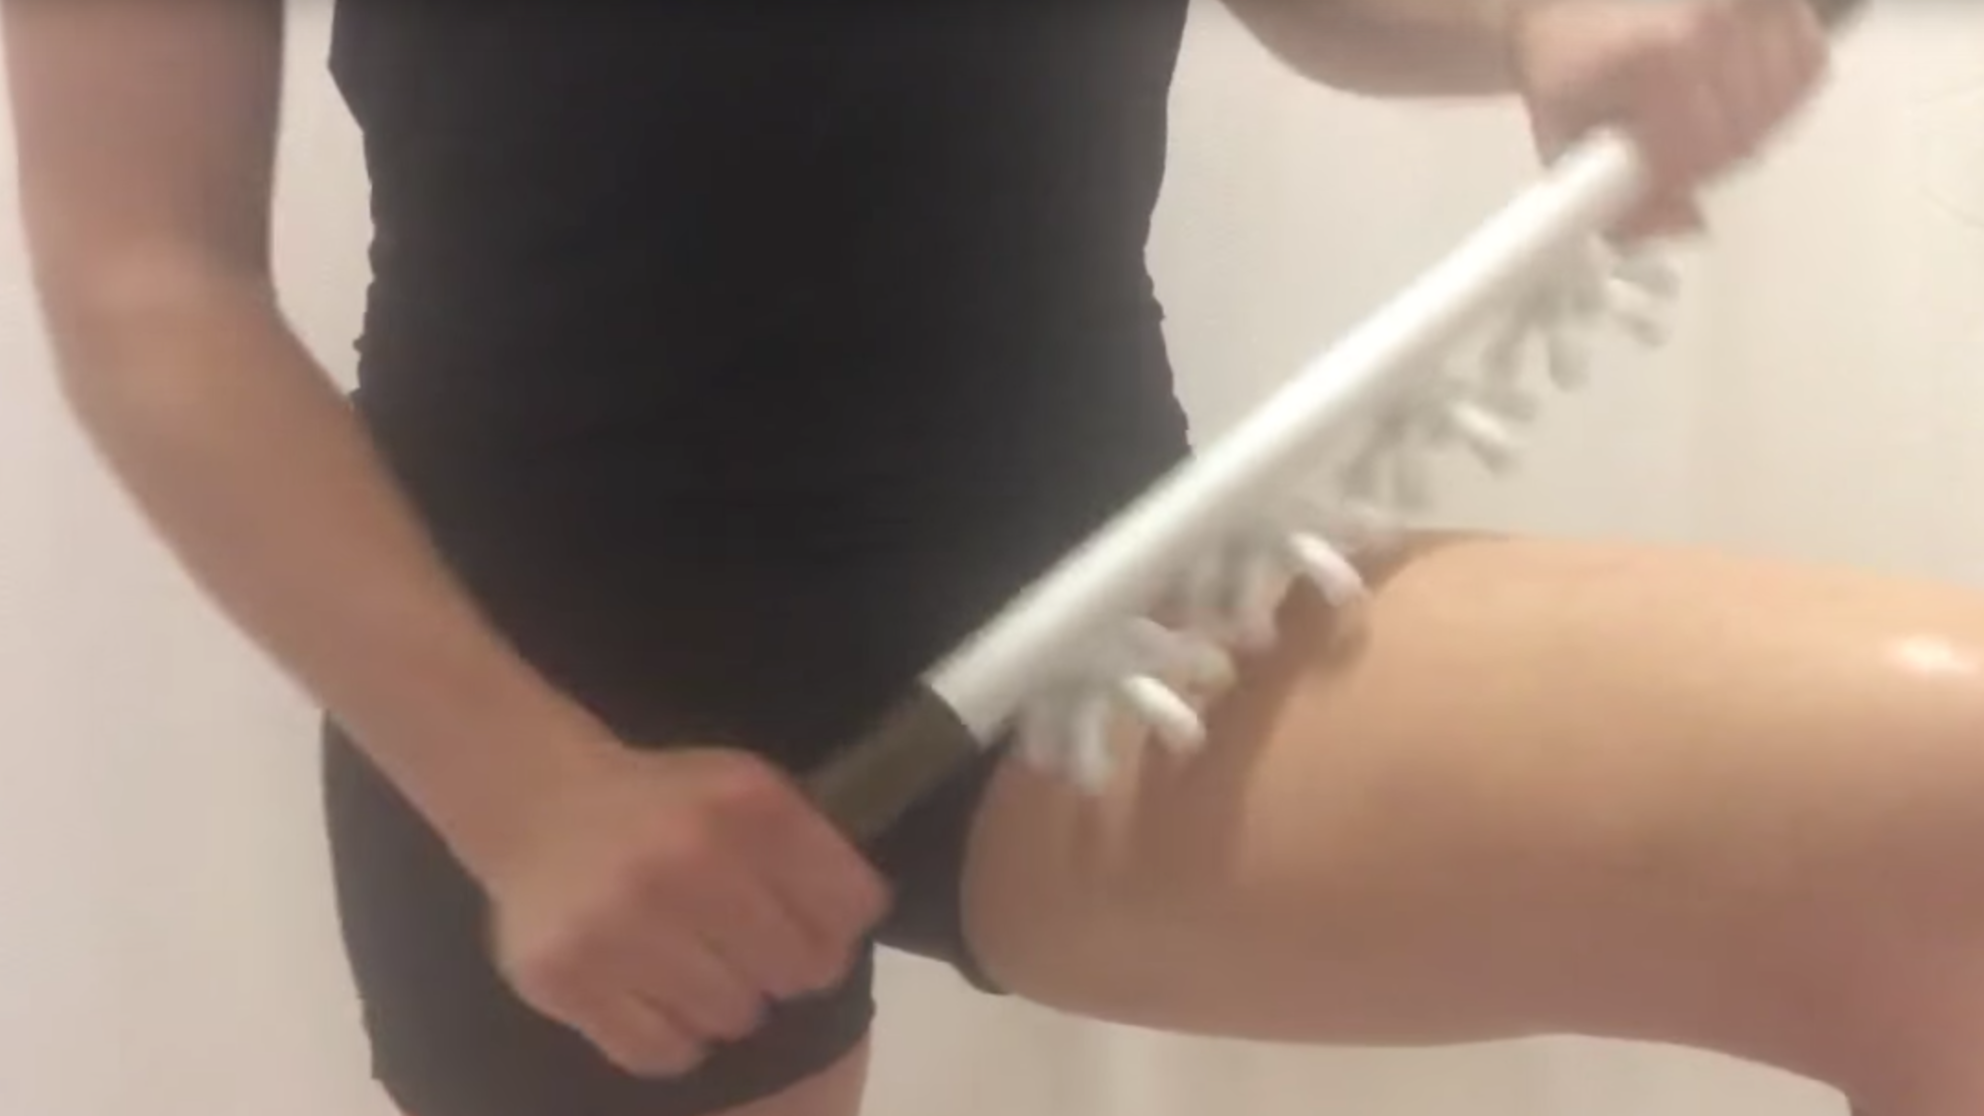 This Popular Product Promises to Eliminate Cellulite. But Women Say It's Injuring Them